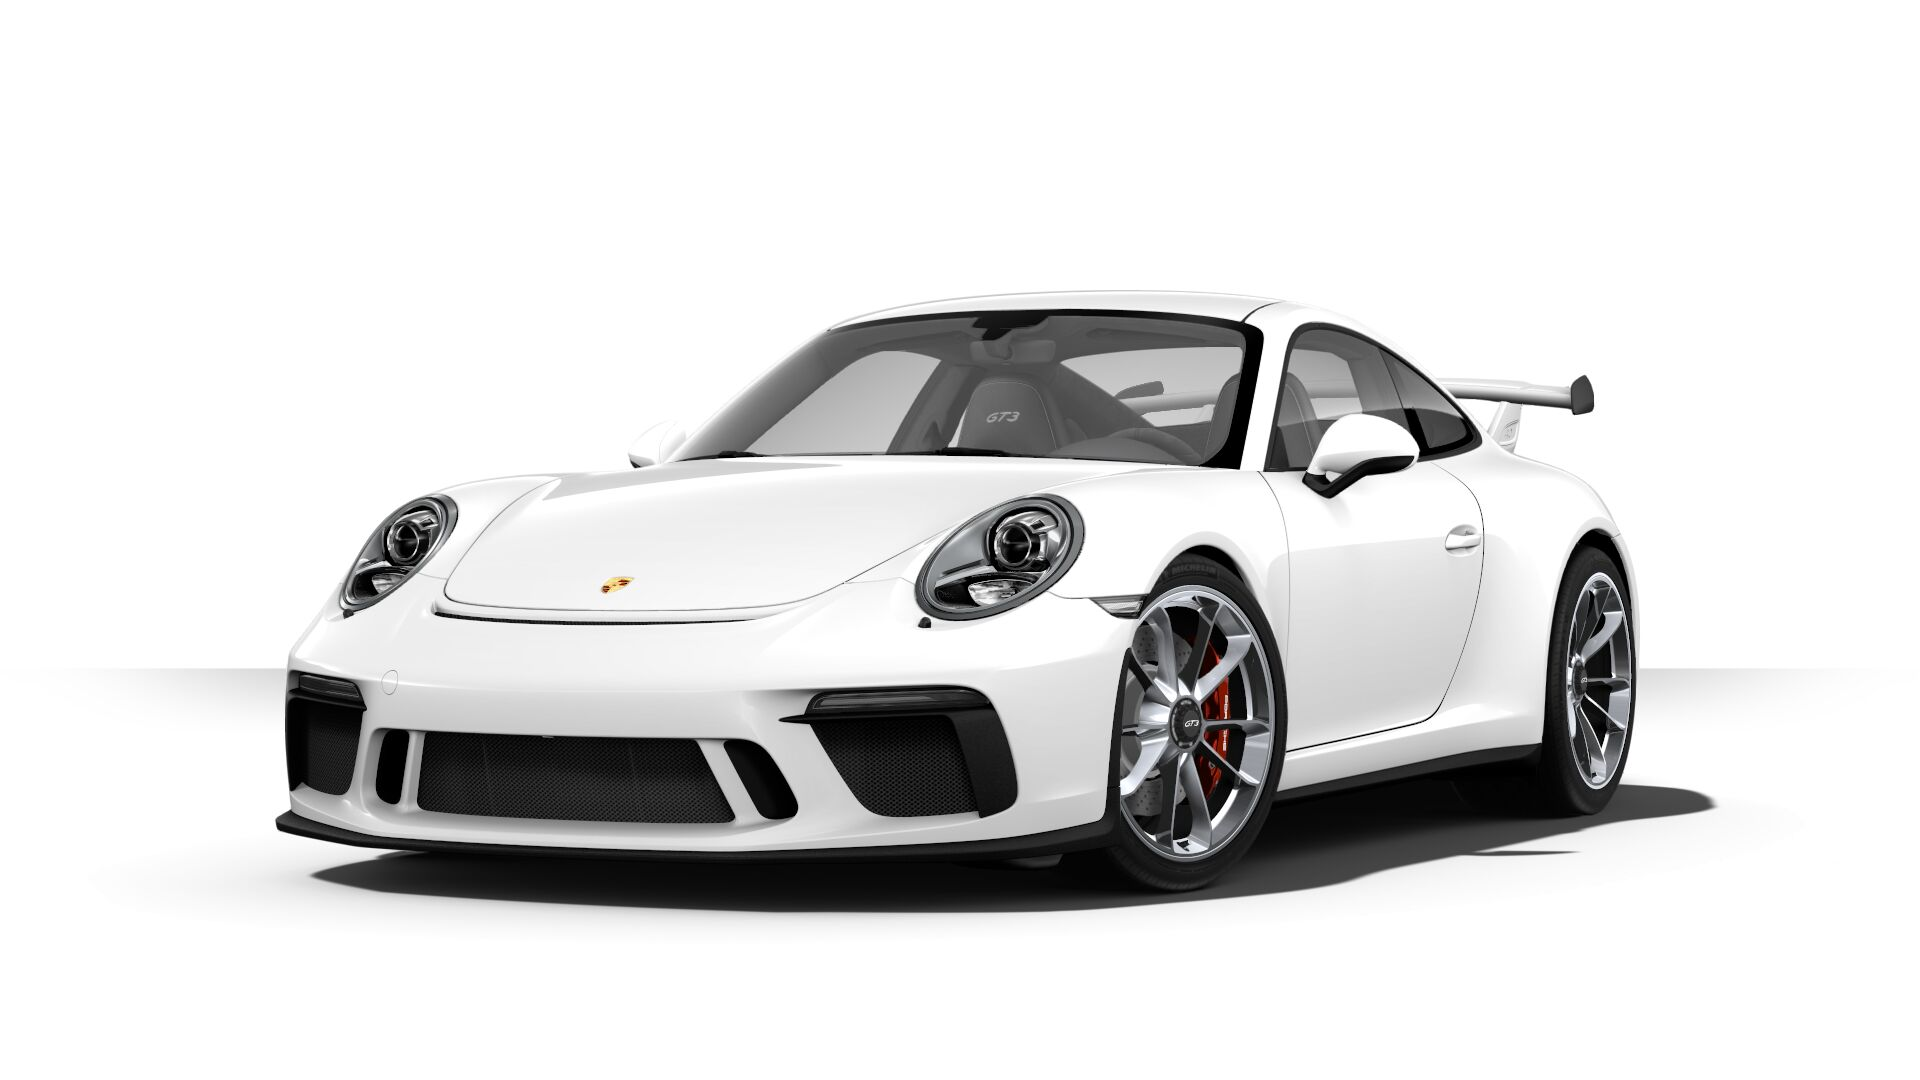 Exterior Design of the 2018 Porsche 911 GT3